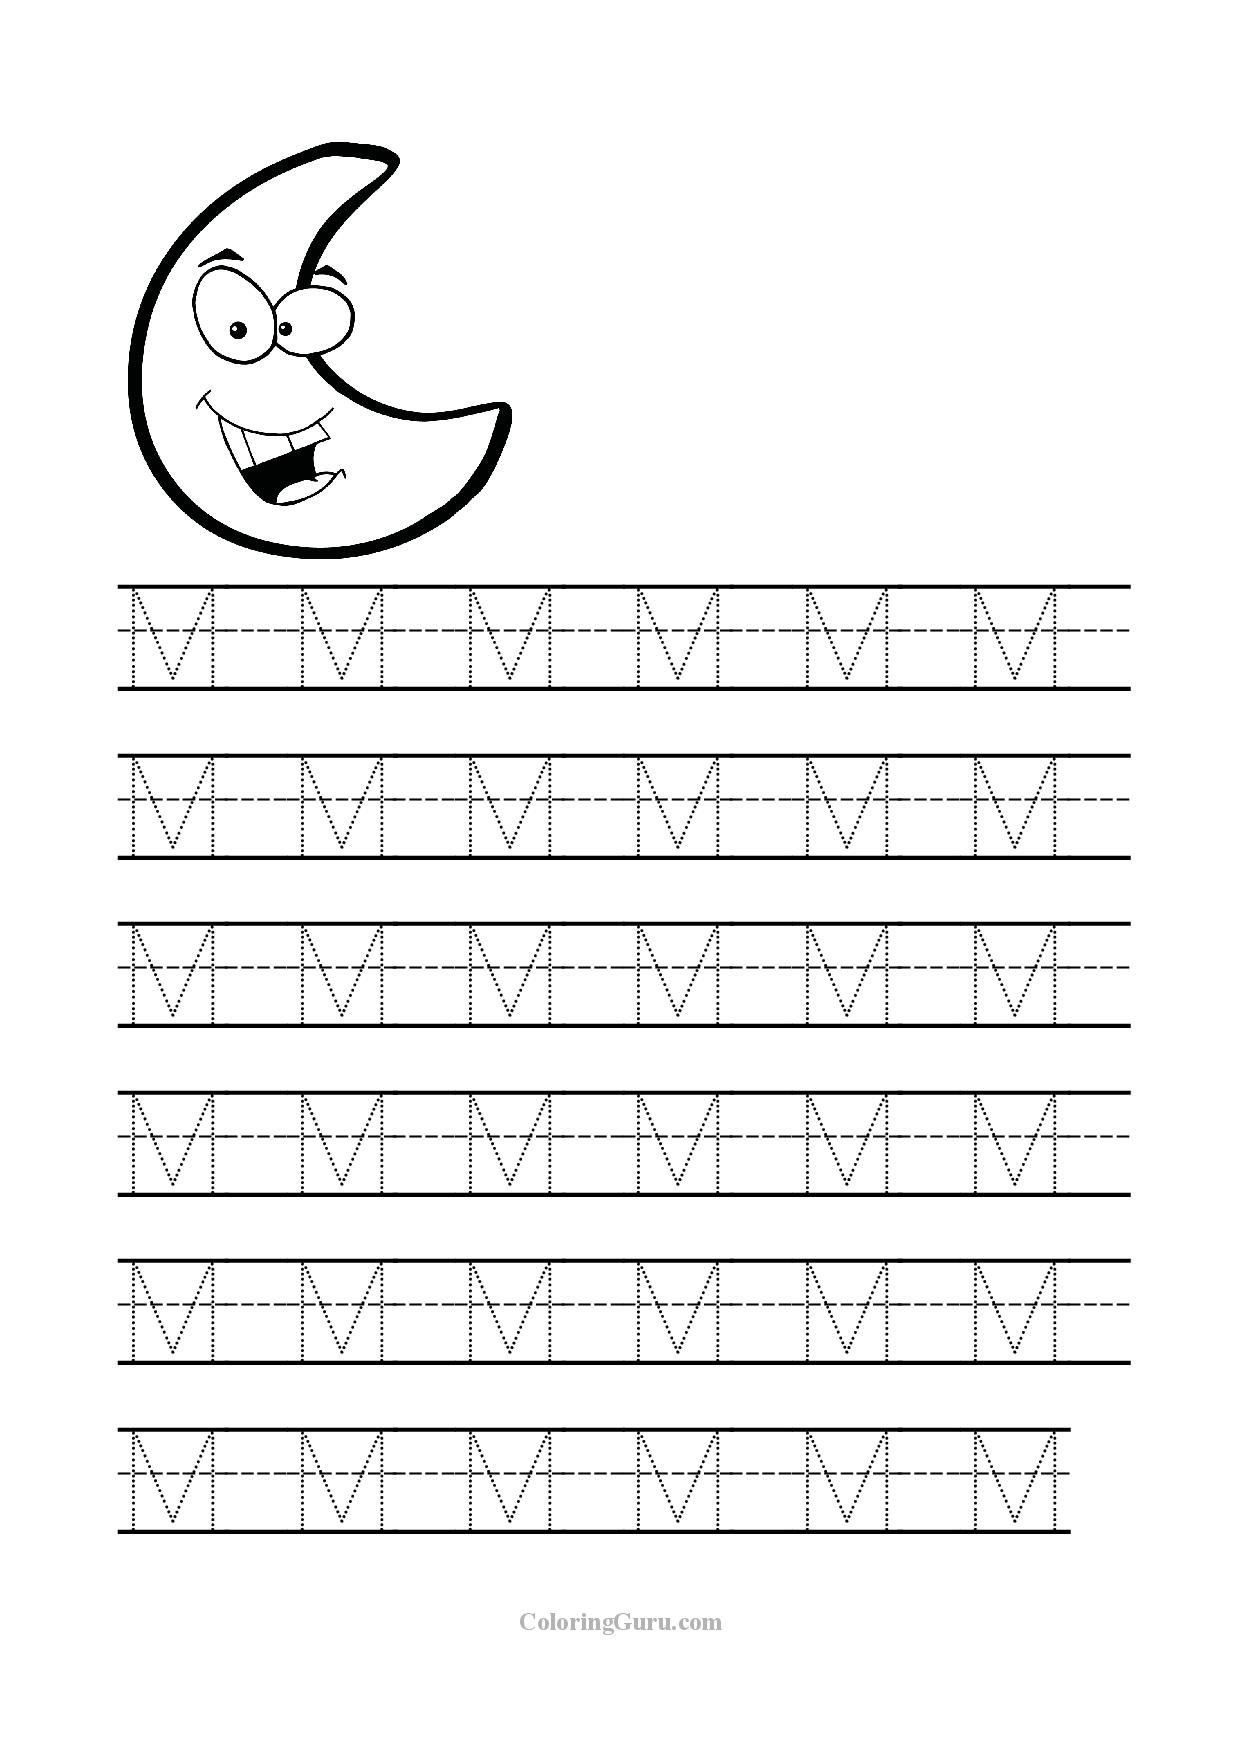 Letter H Tracing Worksheets Preschool Printable Letter M Tracing Worksheets for Preschool Make A